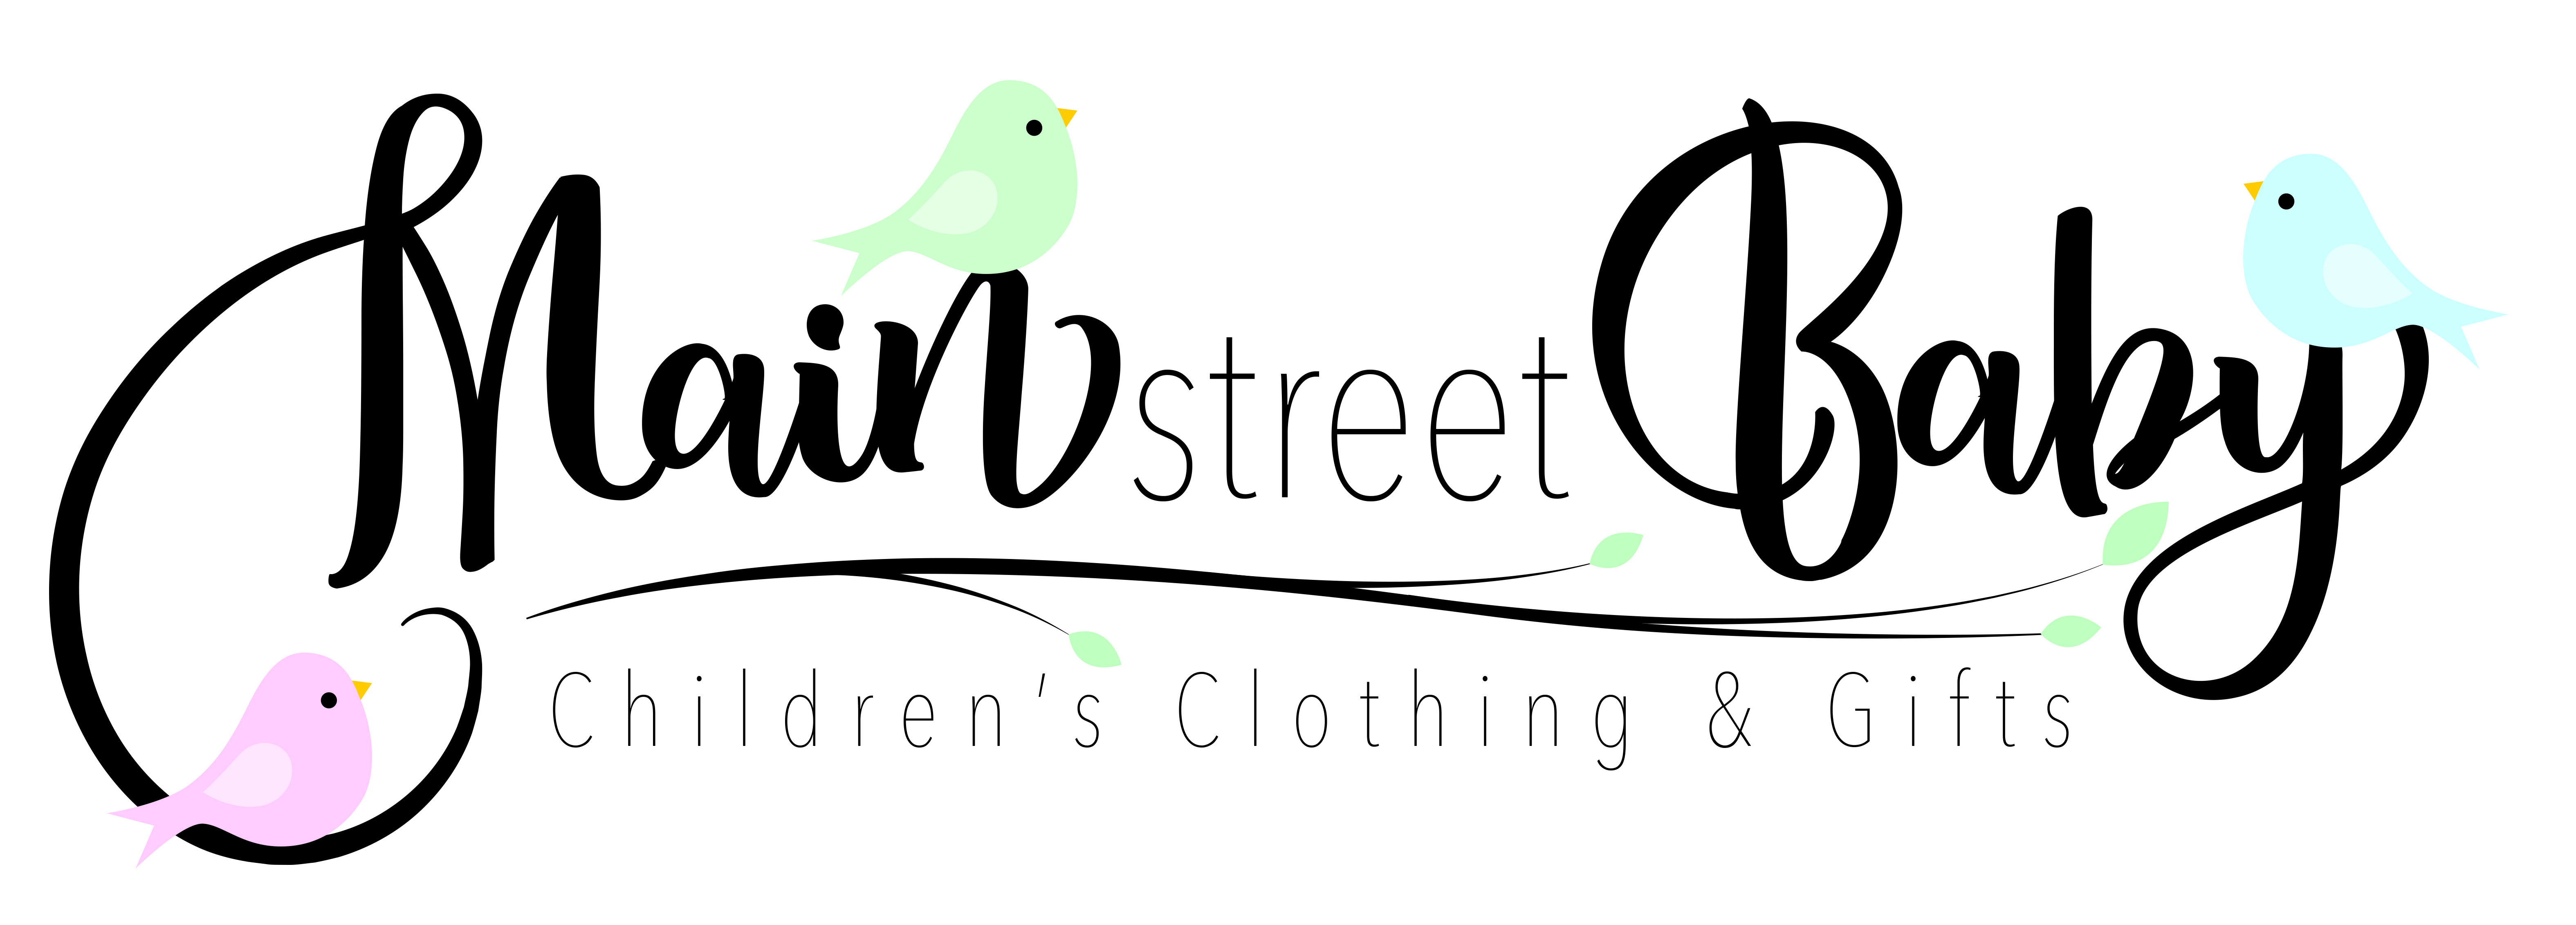 Main street baby to open in blacksburg macaroni kid main street baby will be open regular hours tuesdays through saturdays from 10 am to 6 pm and sundays from noon to 6 pm negle Image collections